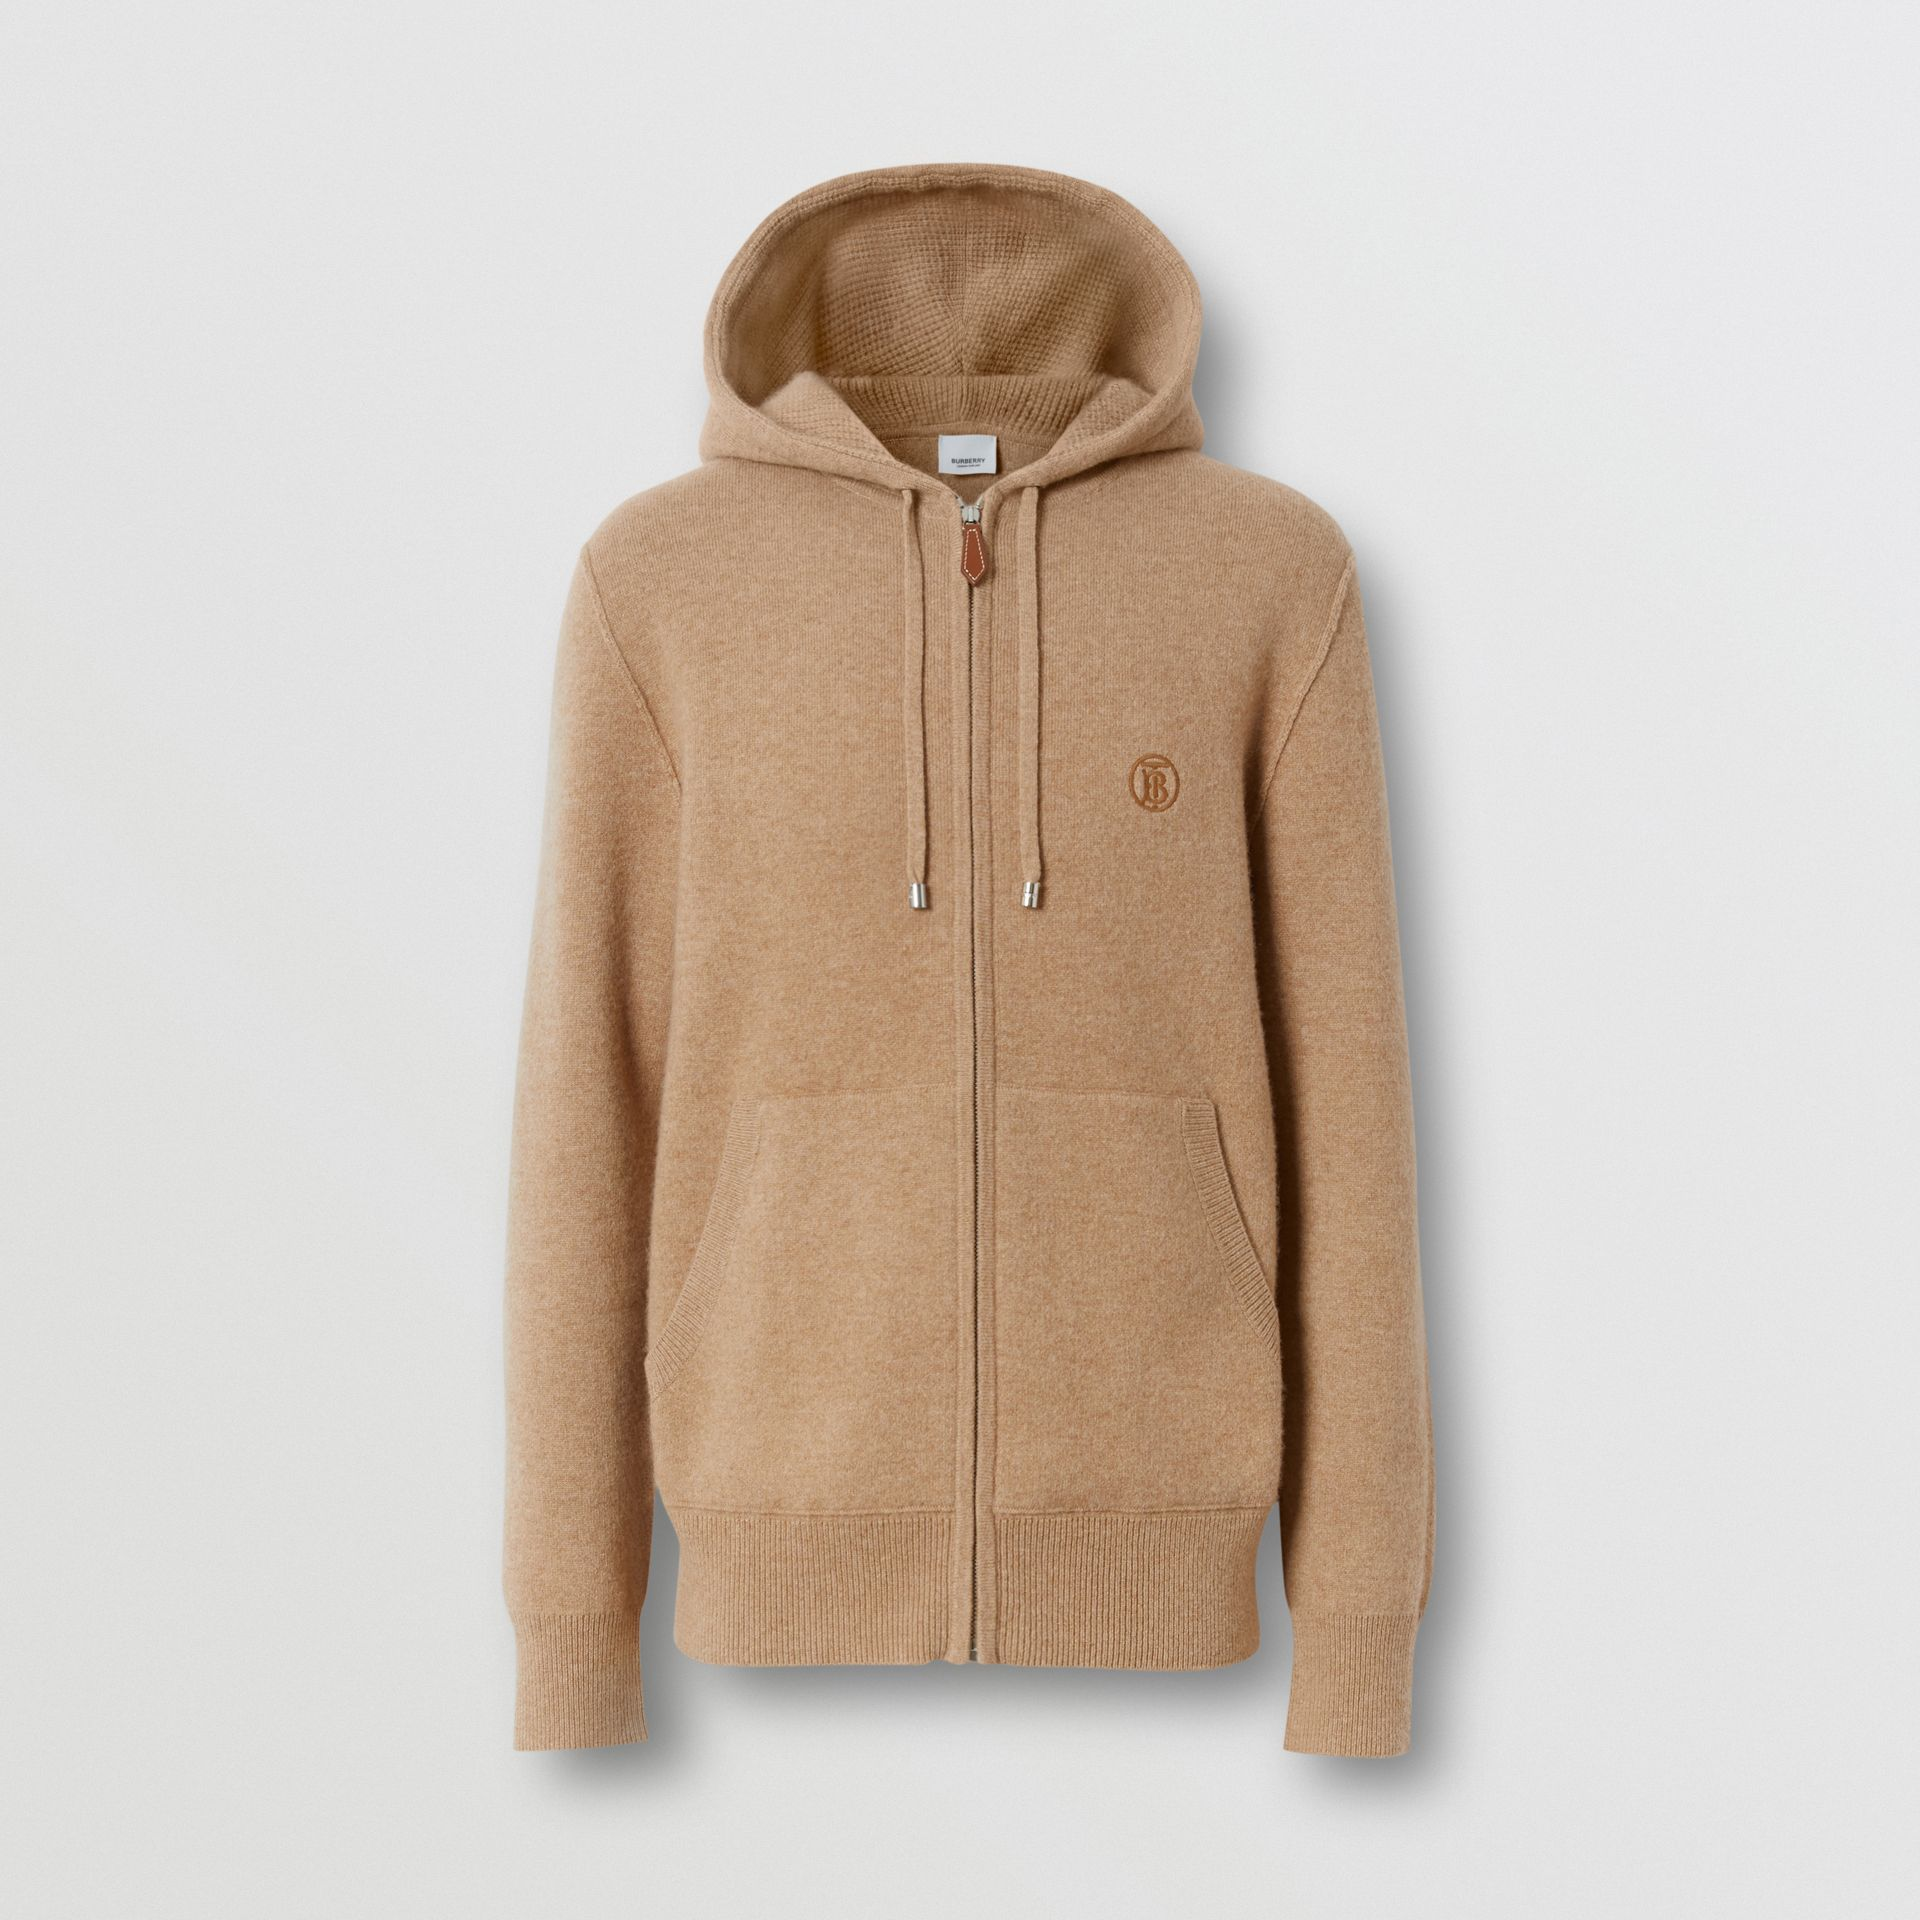 Monogram Motif Cashmere Blend Hooded Top in Pale Coffee - Men | Burberry Hong Kong S.A.R - gallery image 3